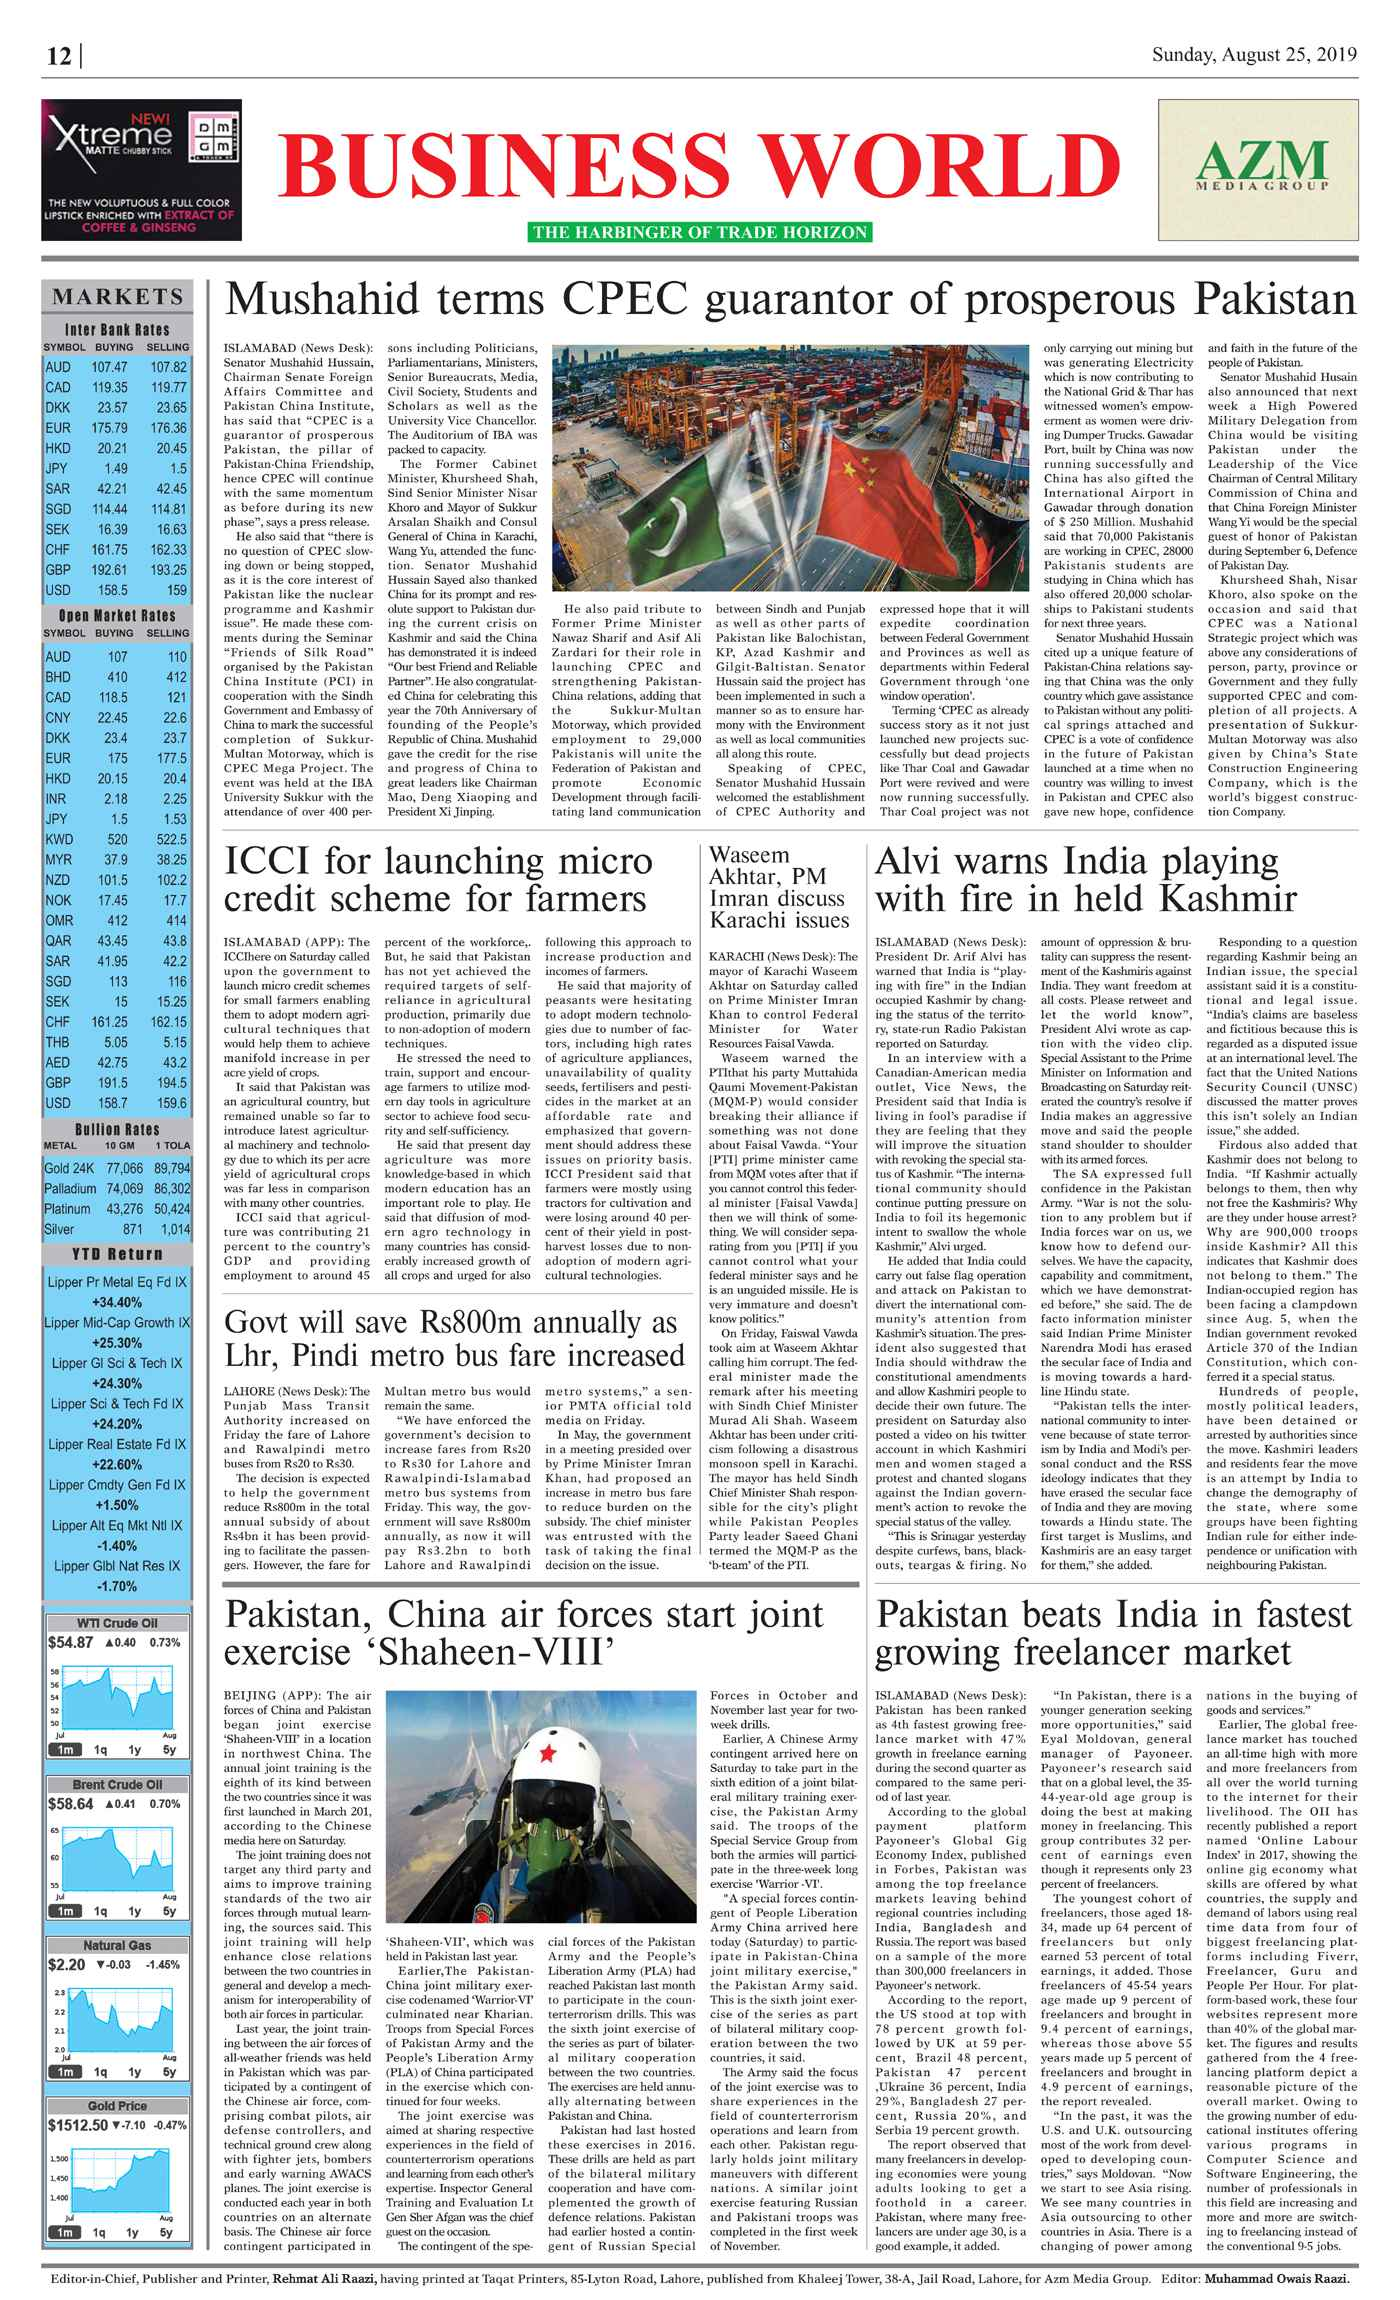 Daily Business World E-Paper 25th August 2019 - Daily